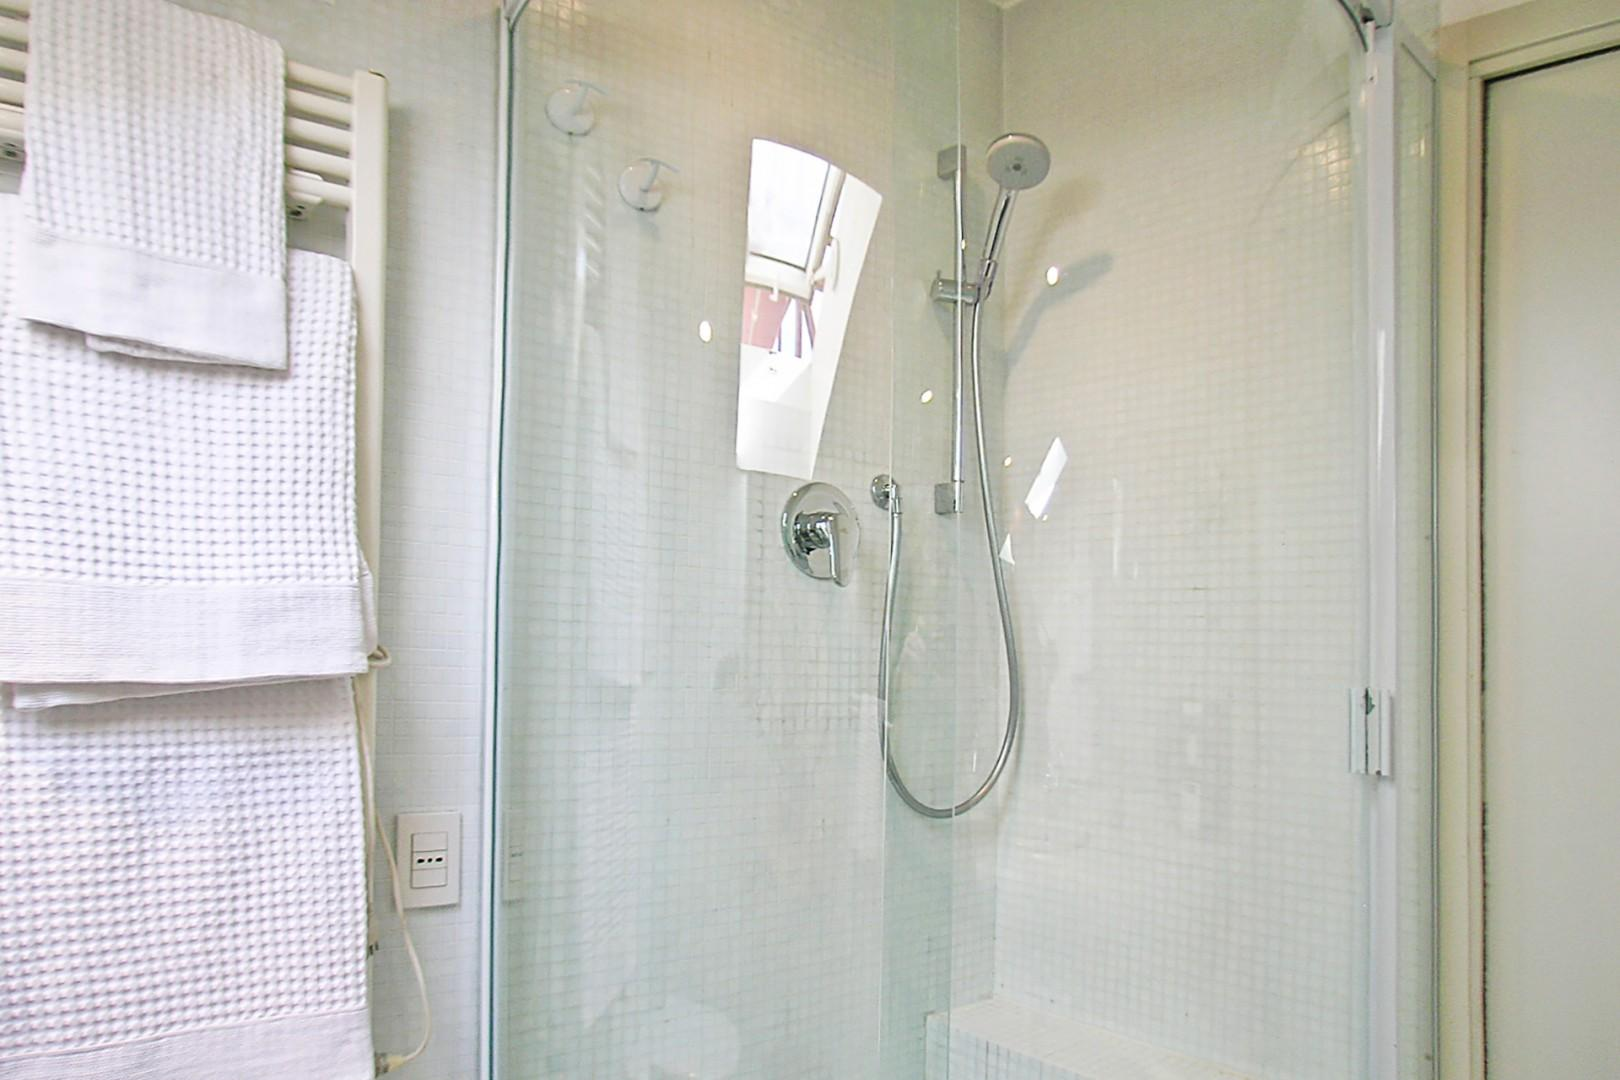 The curved wall of the shower makes great use of space.